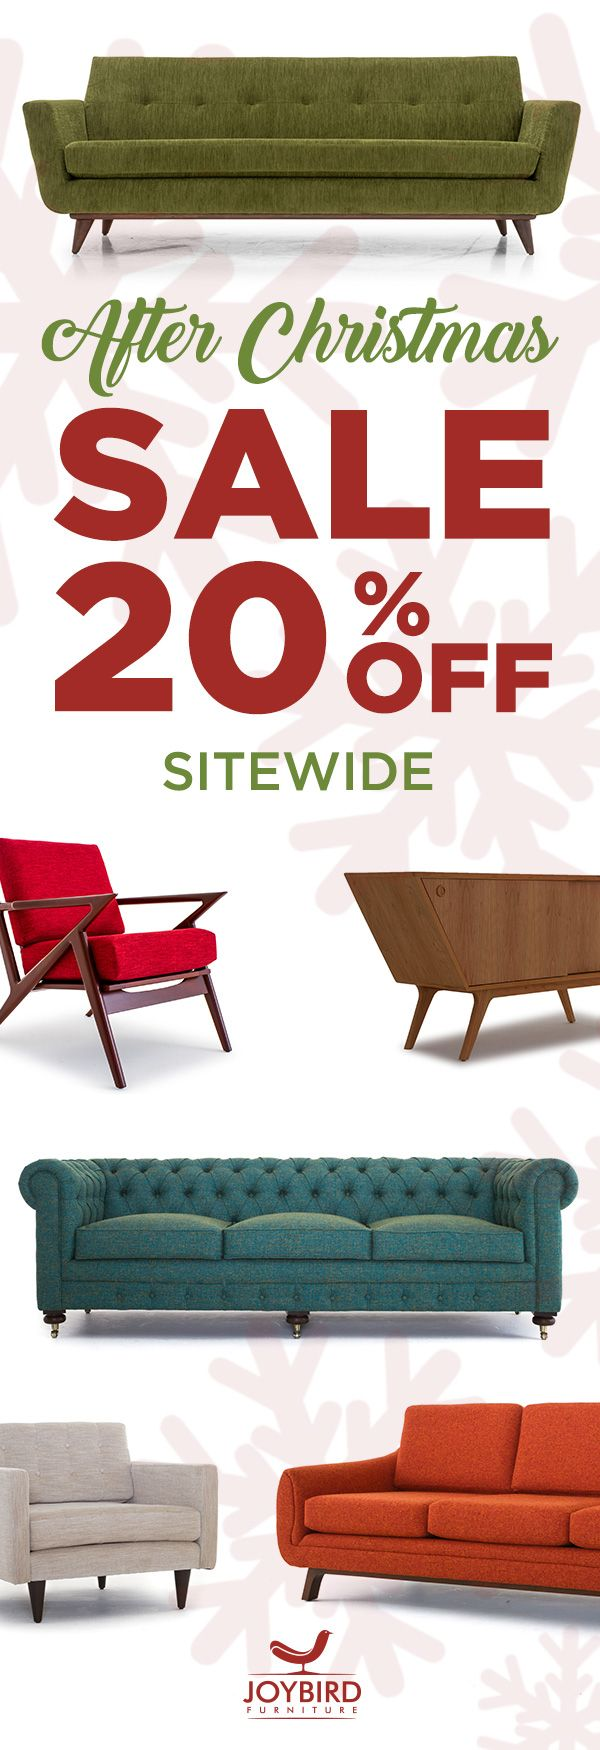 New year, new furniture. Make a statement with iconic mid-century modern furniture from Joybird. Enjoy free in-home delivery, lifetime warranty, 365-day return policy, plus 0% financing for low monthly payments. Shop Joybird now and take 20% off EVERYTHING today during their After Christmas Sale!